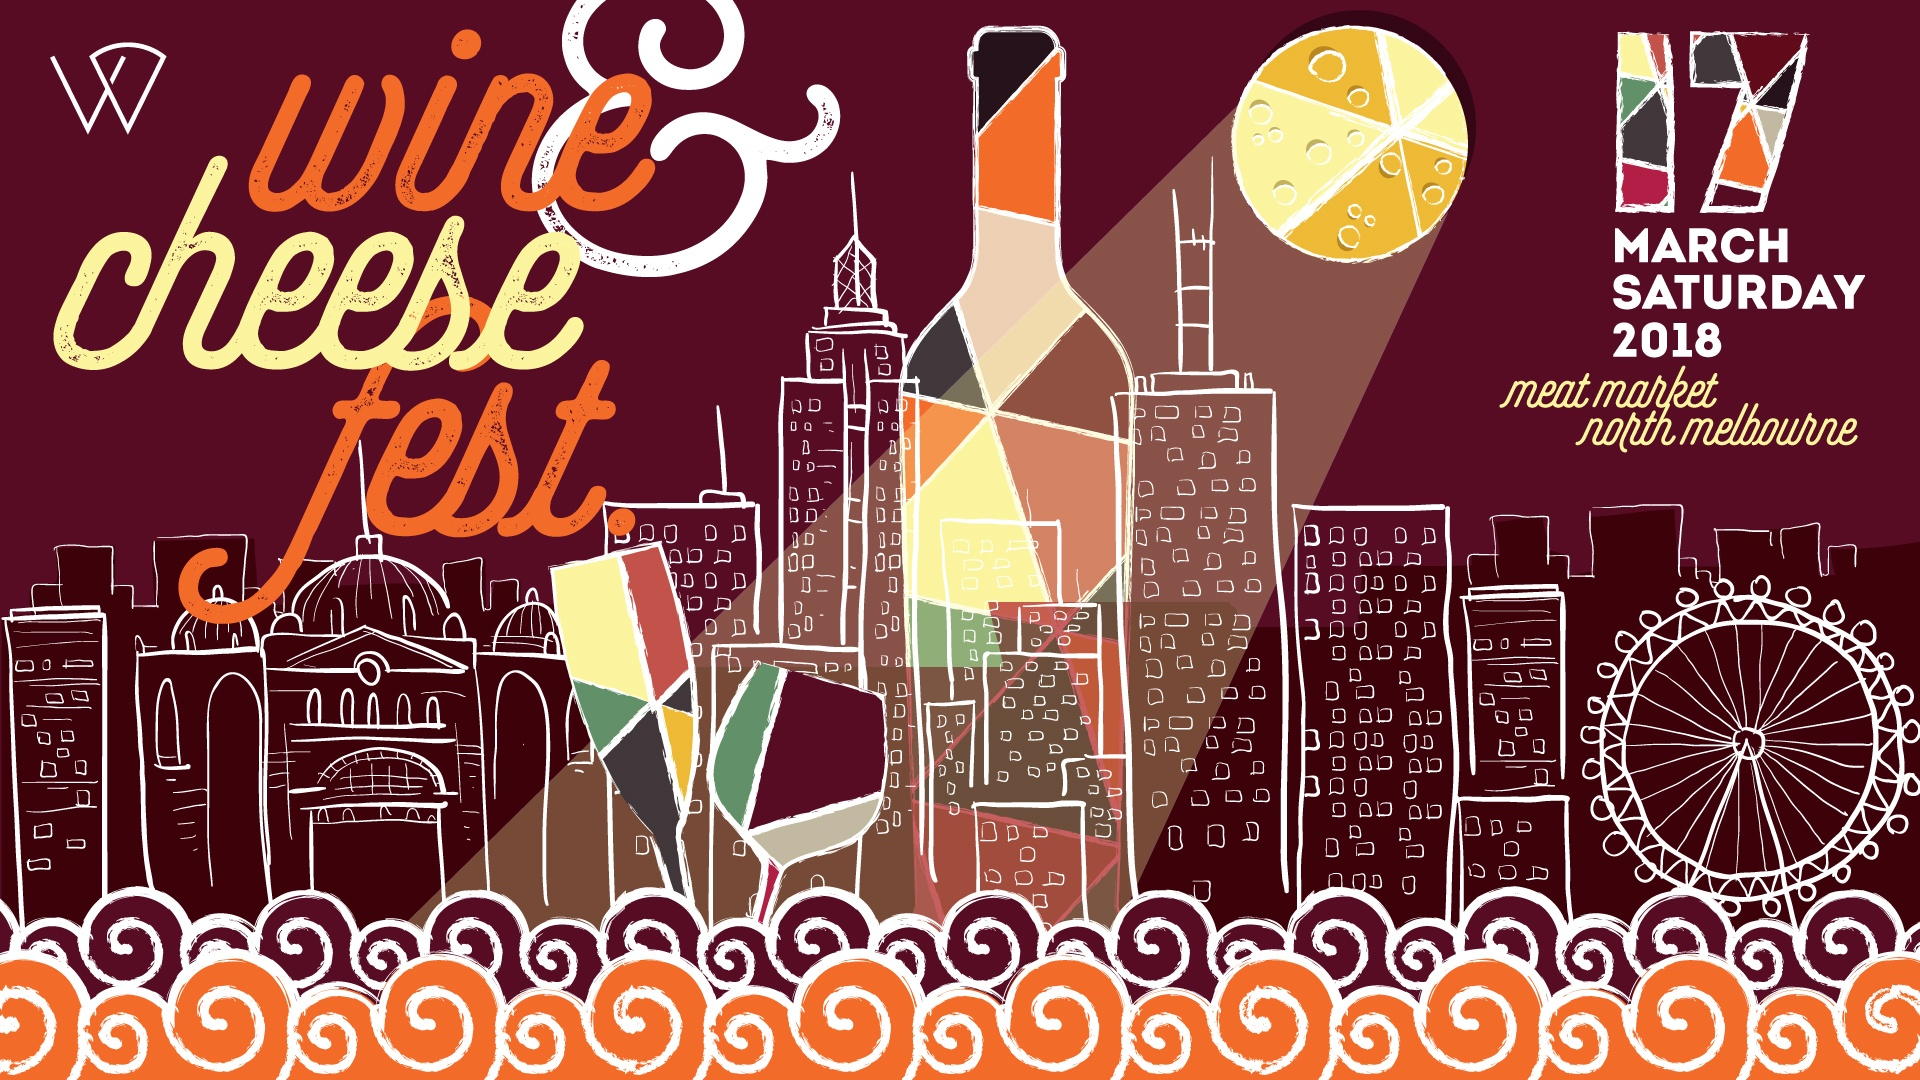 Wine & Cheese Fest @ the Meat Market 2018